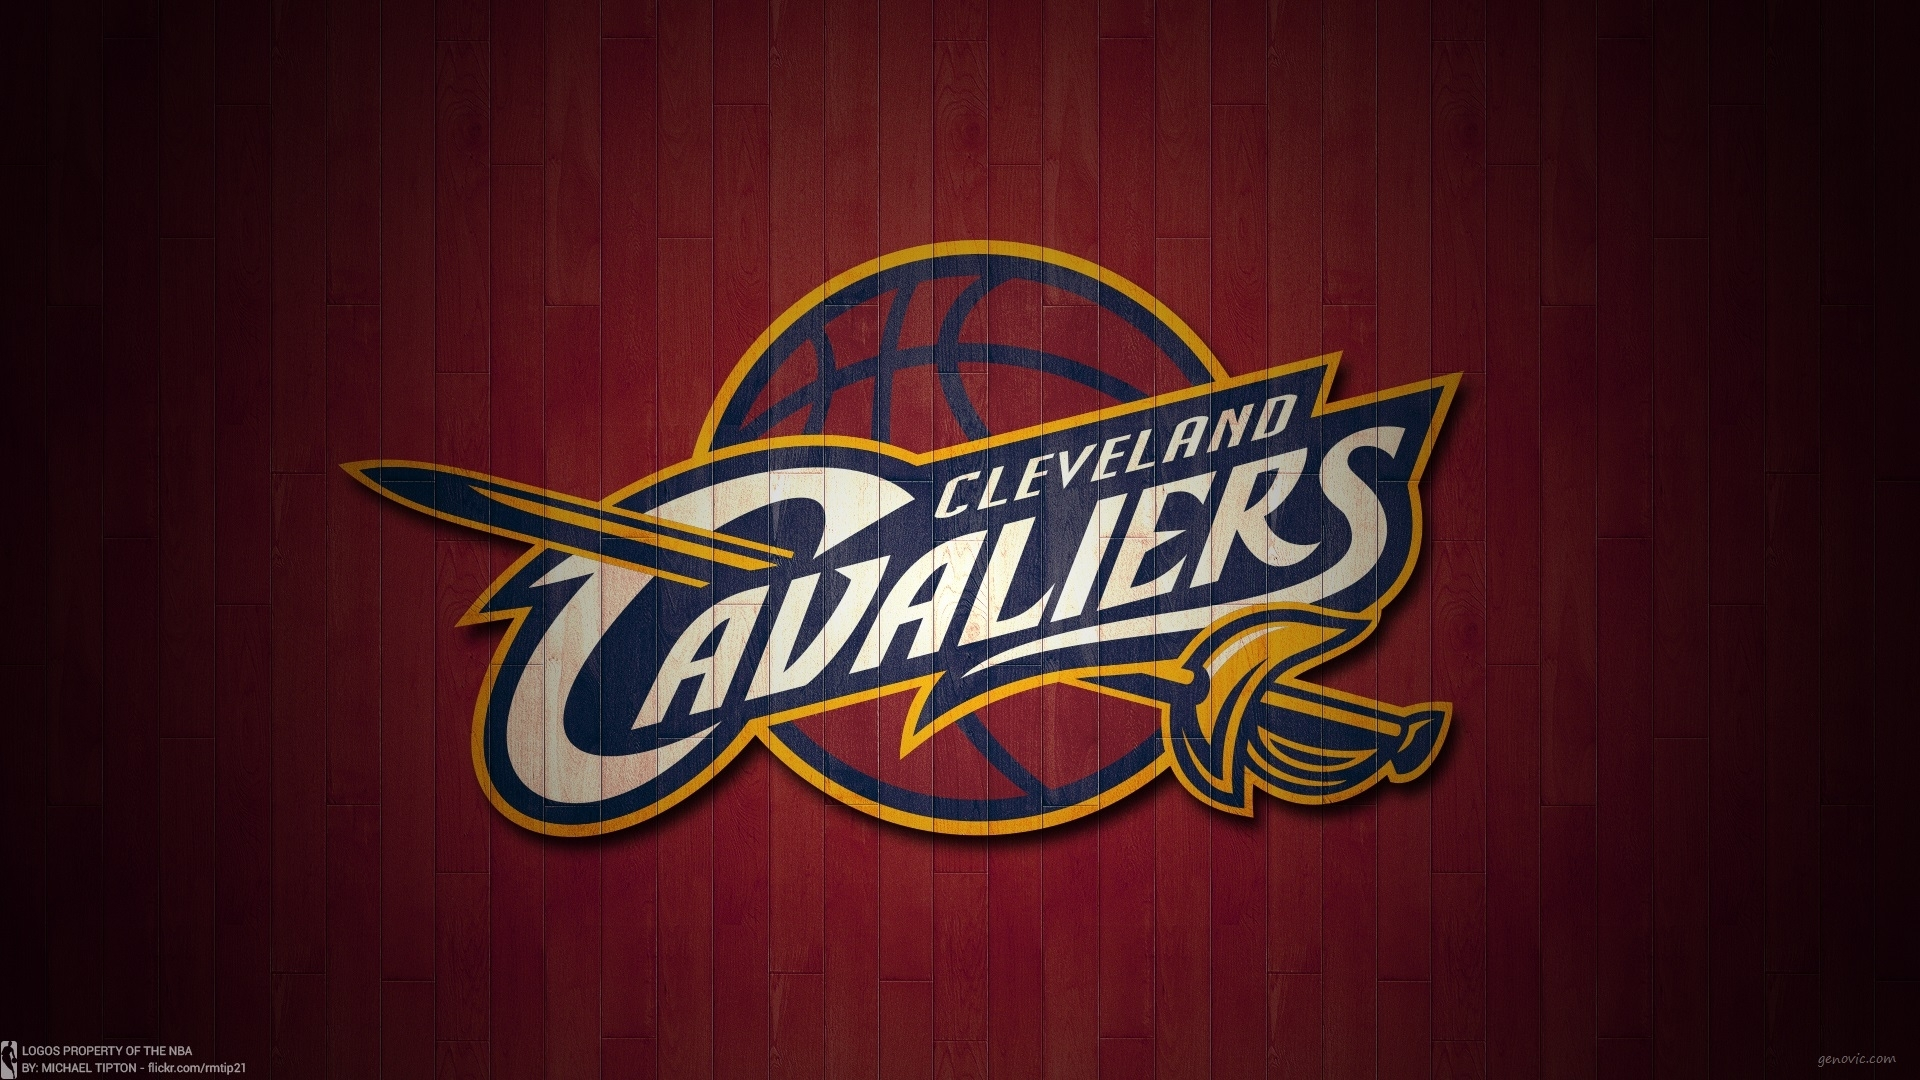 Title : cleveland cavaliers hd wallpaper | crafts | pinterest | cleveland. Dimension : 1920 x 1080. File Type : JPG/JPEG. 10 New Nba Teams Logo ...